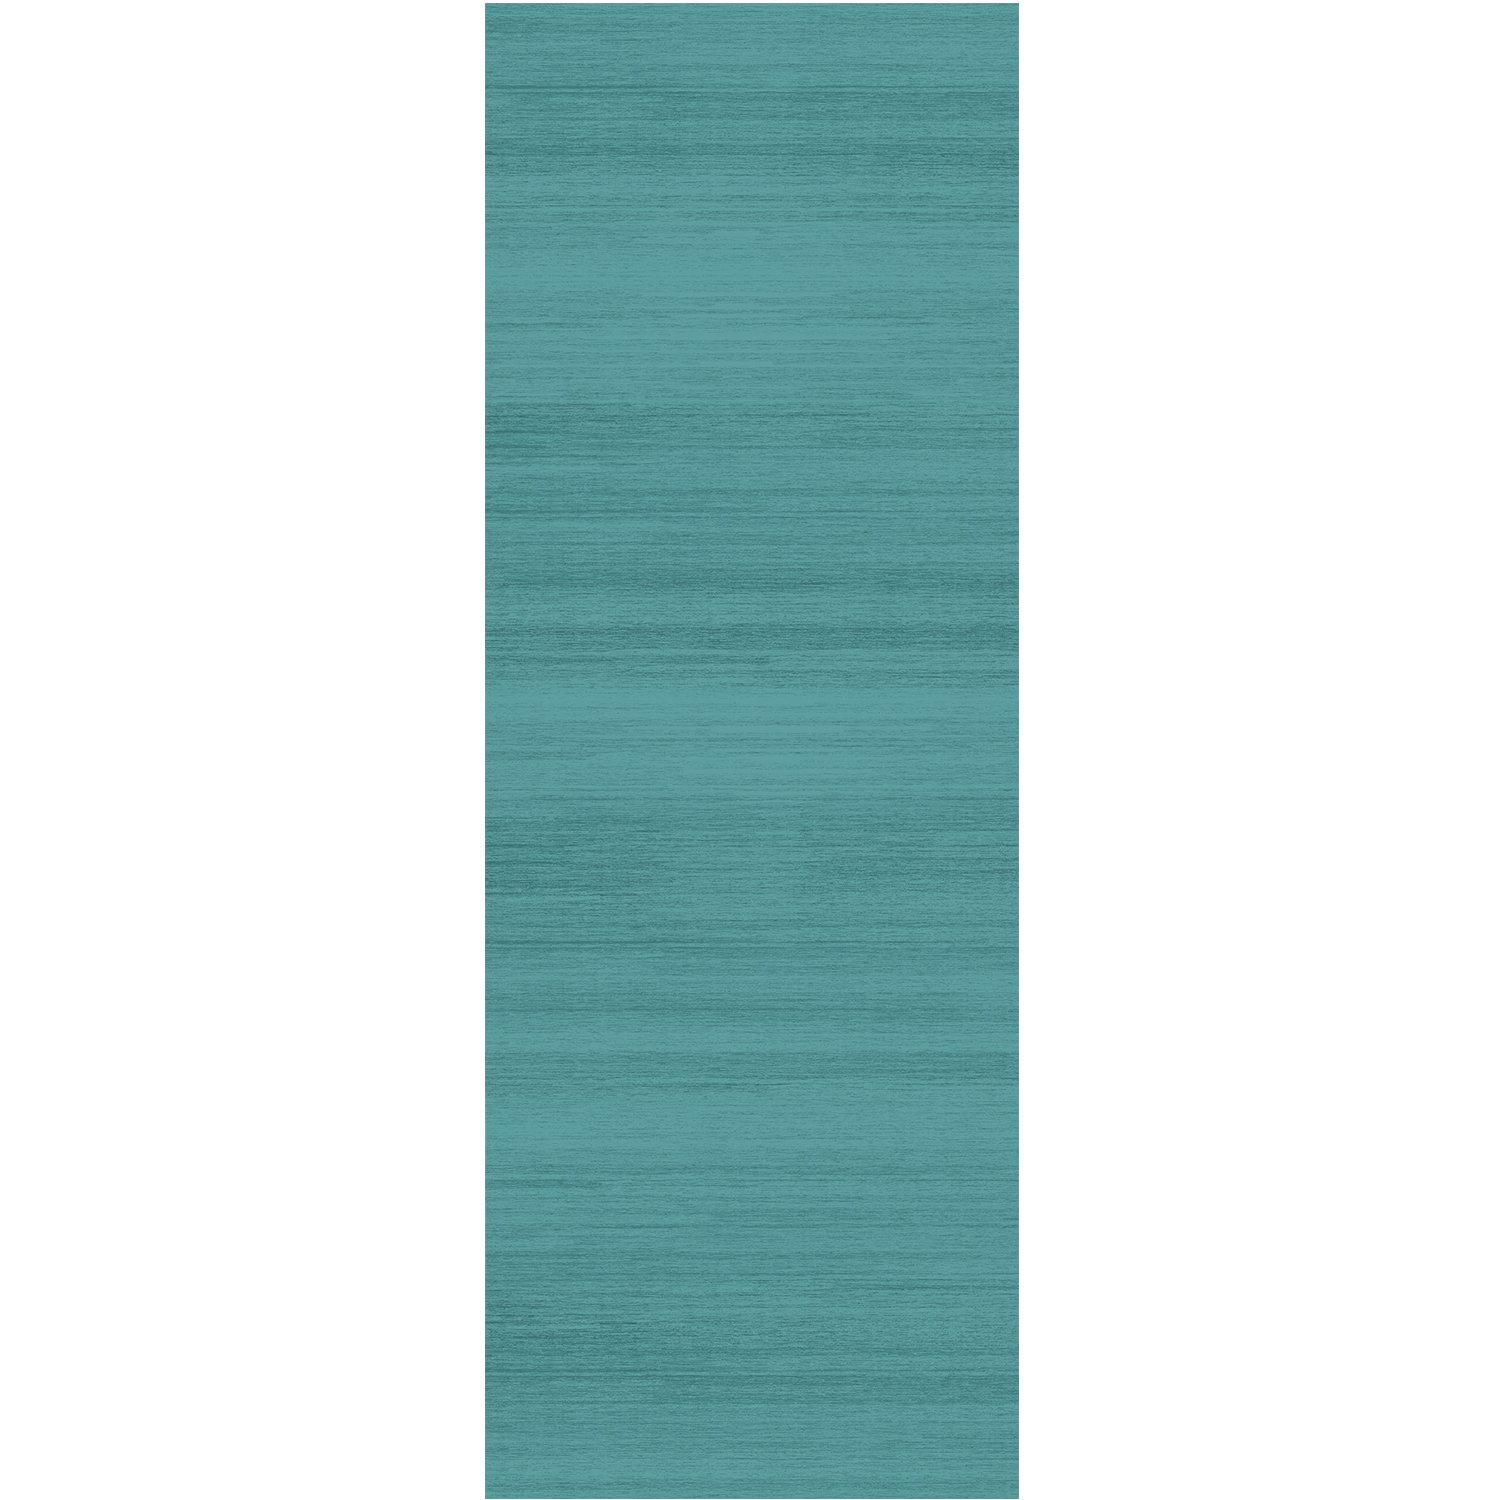 RUGGABLE Washable Stain Resistant Pet Dog Runner Rug for Indoor/Outdoor - Solid Textured Ocean Blue 2.5' x 7' Runner Rug by RUGGABLE